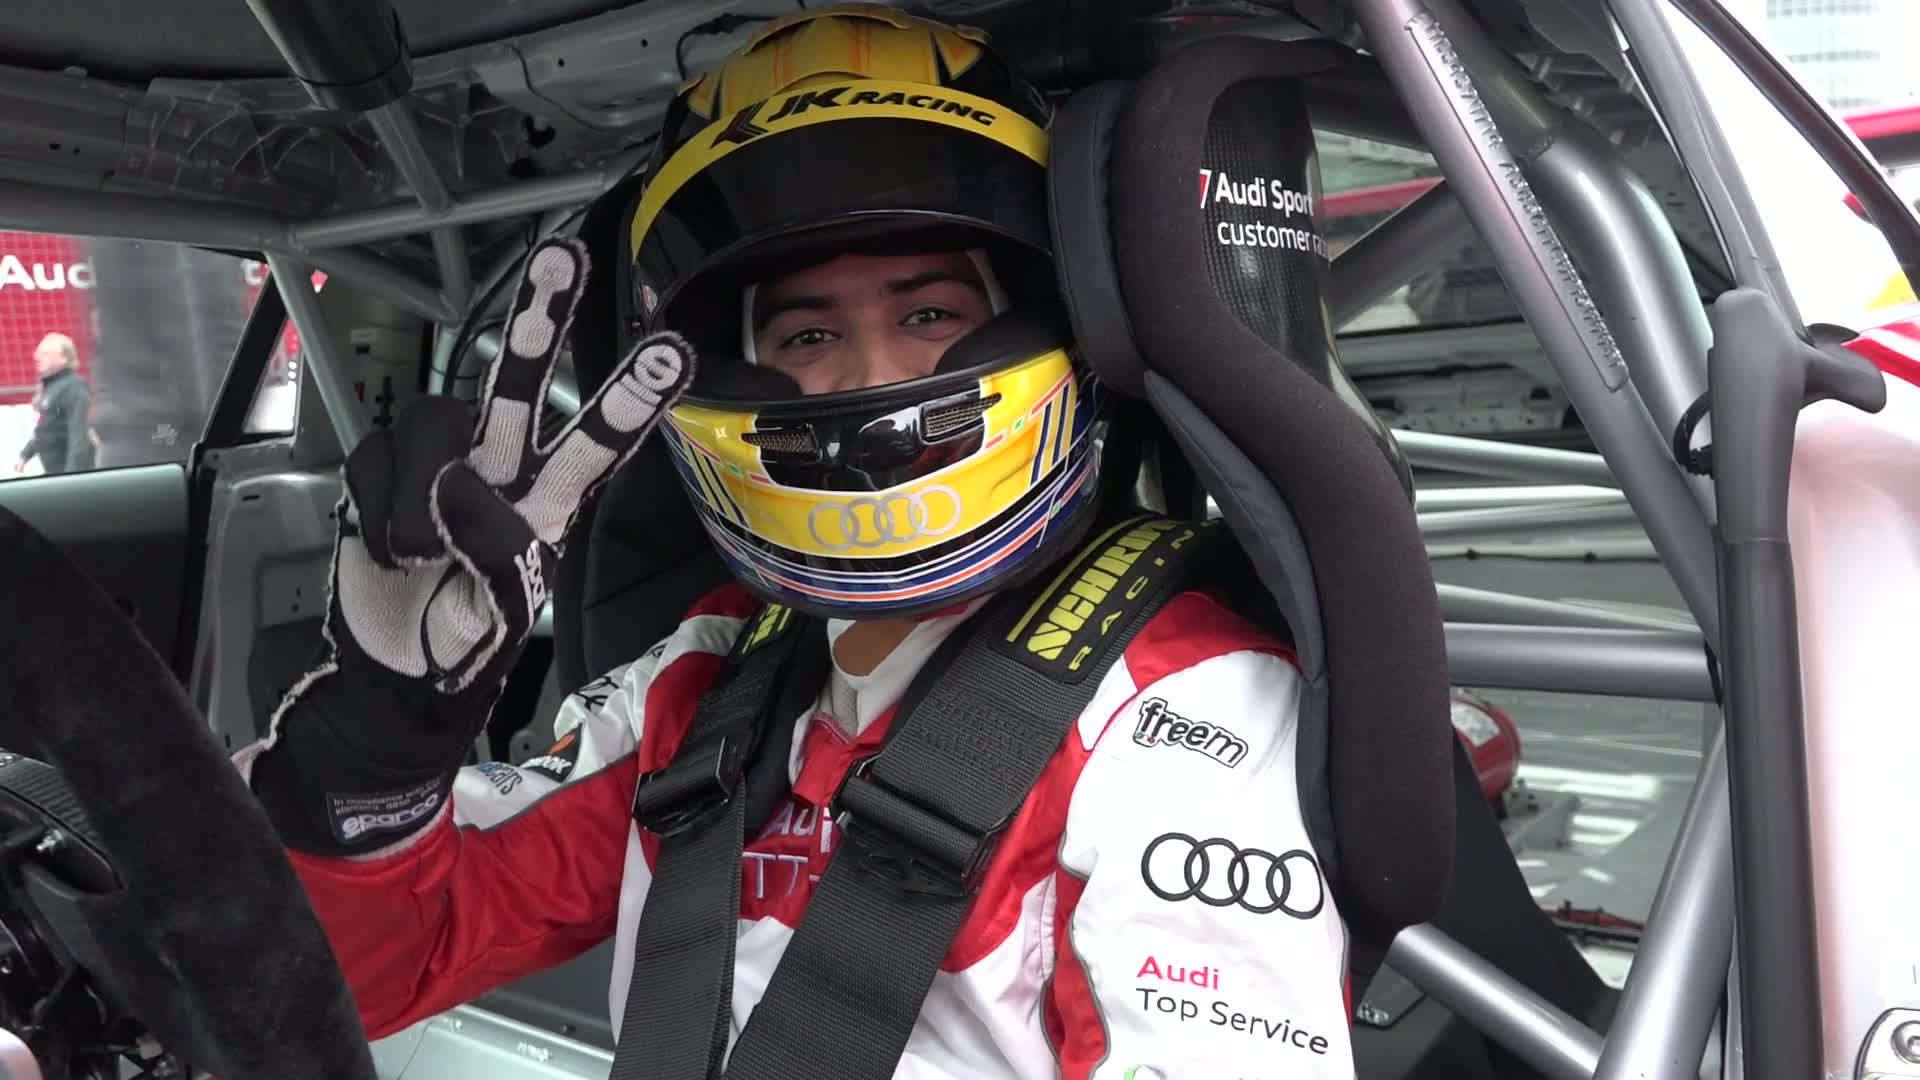 60 Seconds of Audi Sport 86/2015 - TT Cup Nürburgring, Rennen 1